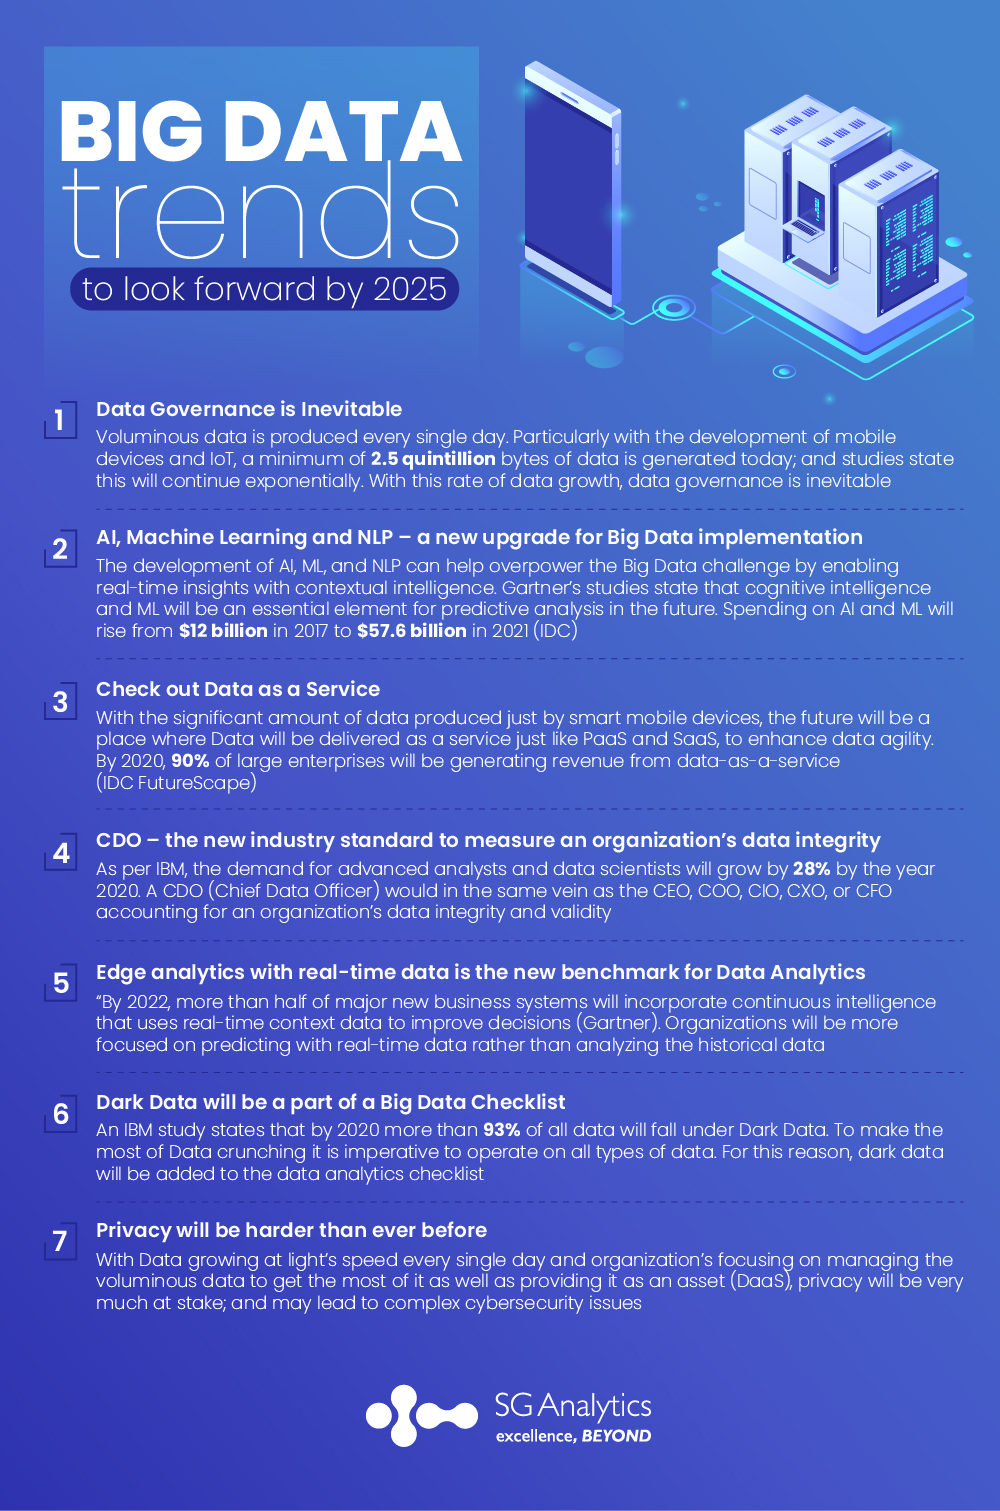 Big data trends in 2020 and upcoming years | SG Analytics